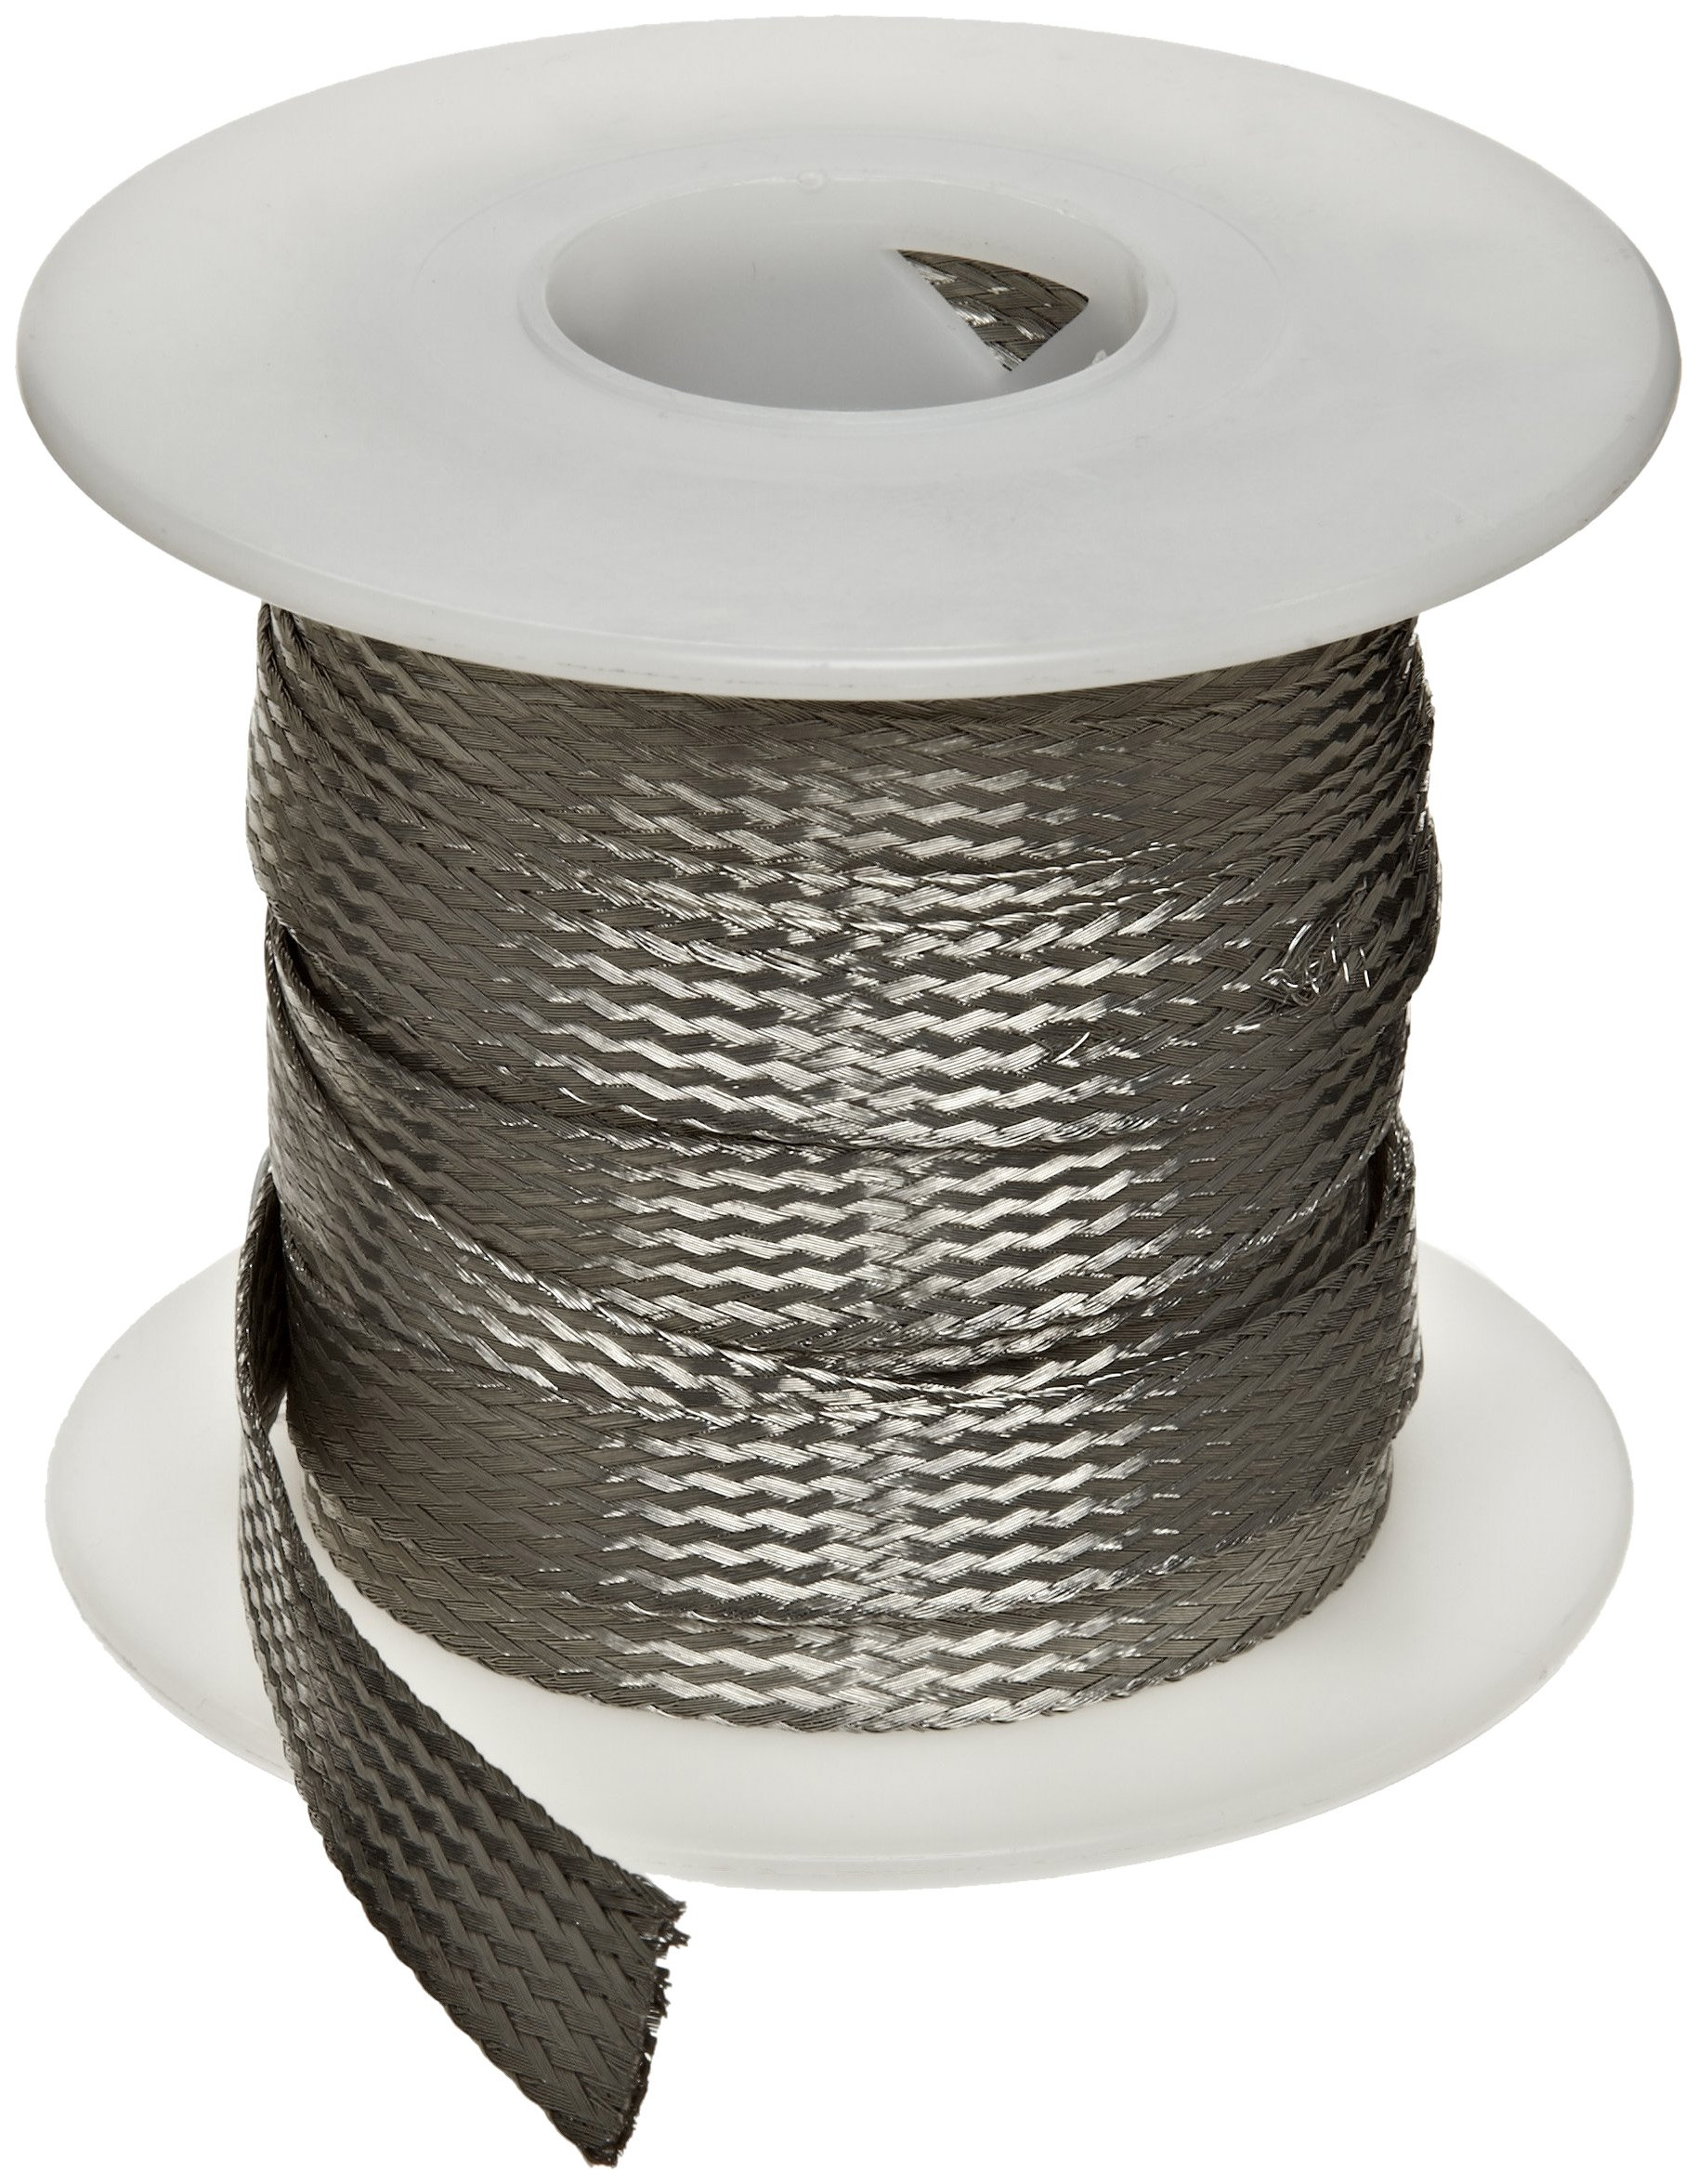 Flat Tinned Copper Braid, Bright, 1/4'' Width, 25' Length (Pack of 1)